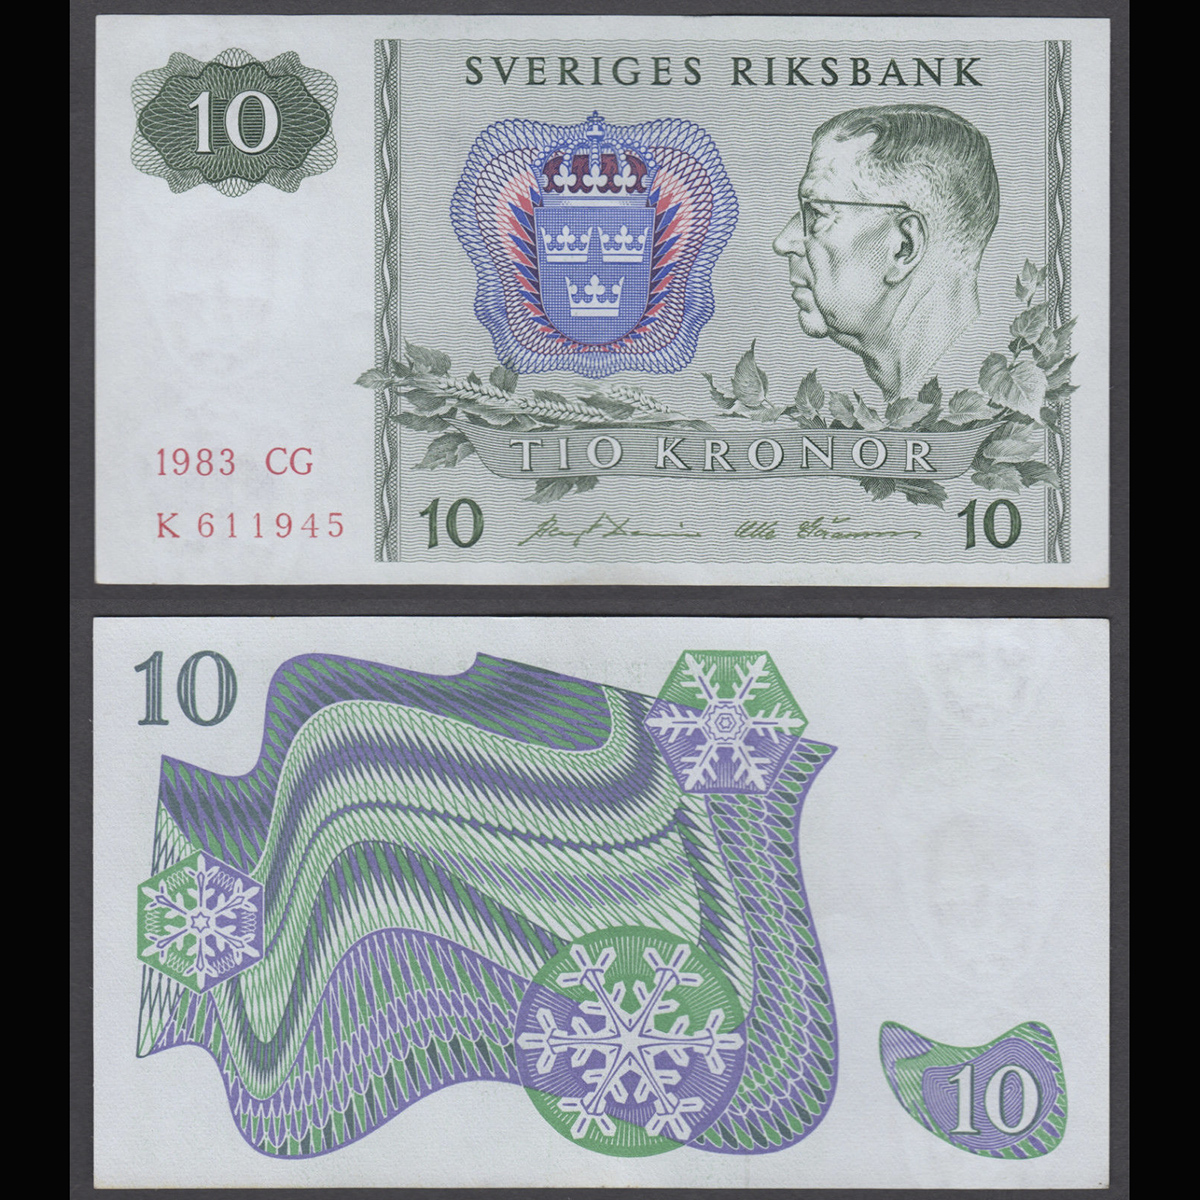 Sweden (Thụy Điển) 10 kronor 1989